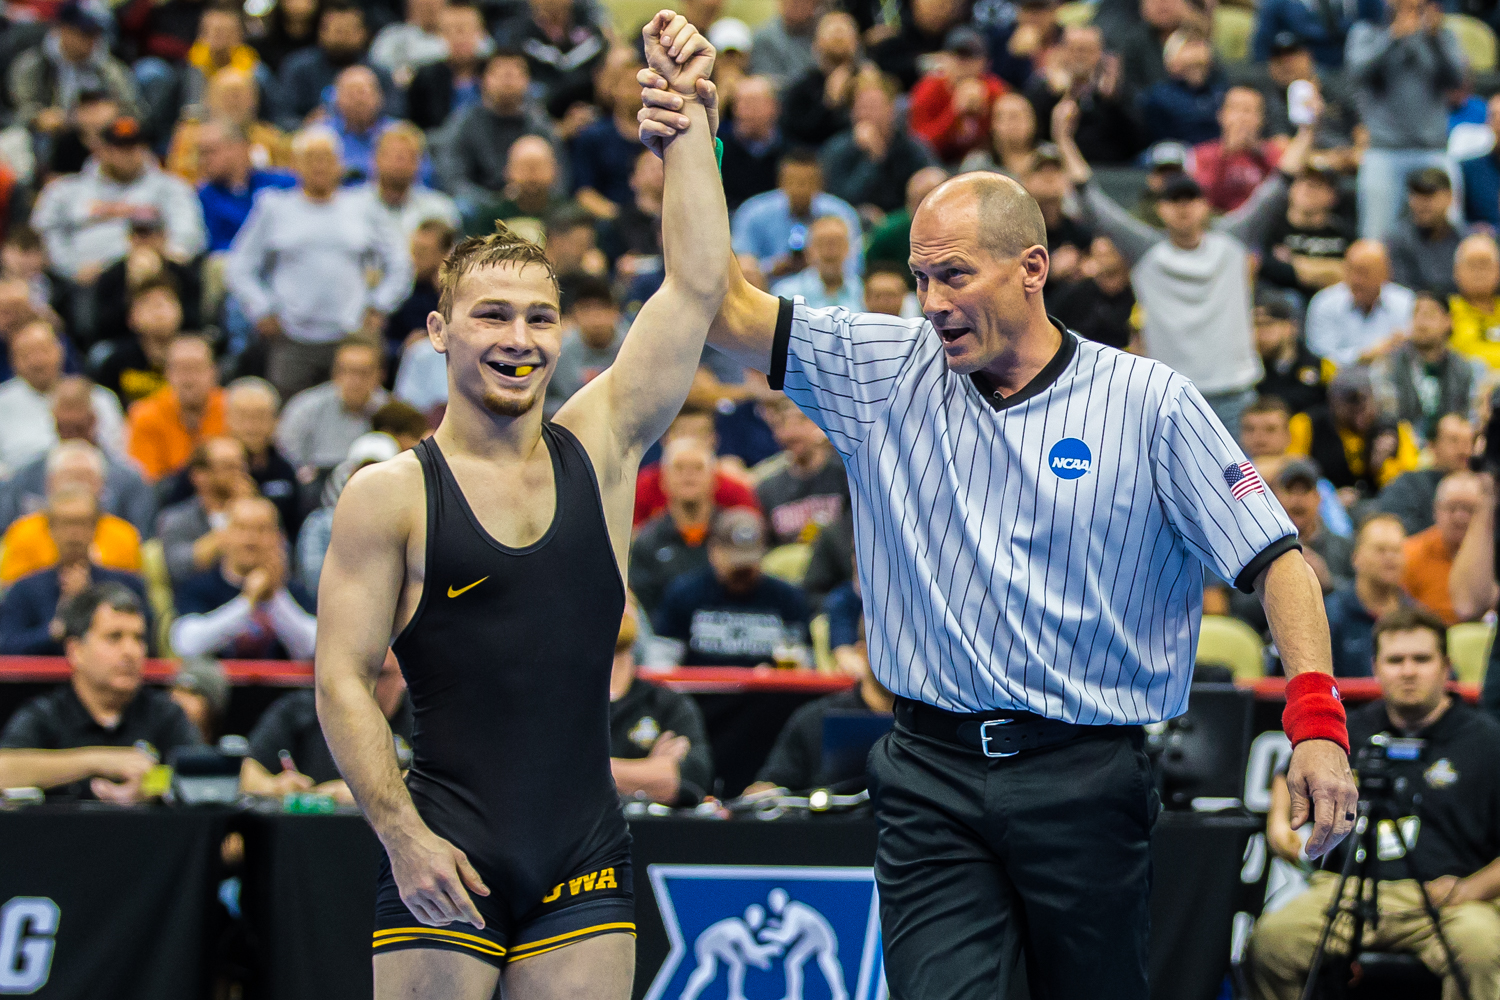 Iowa's 125-pound Spencer Lee defeats Oklahoma State's Nicholas Piccininni during the fourth session of the 2019 NCAA D1 Wrestling Championships at PPG Paints Arena in Pittsburgh, PA on Friday, March 22, 2019. Lee won by decision, 11-4, and earned a spot in the finals of his weight class.